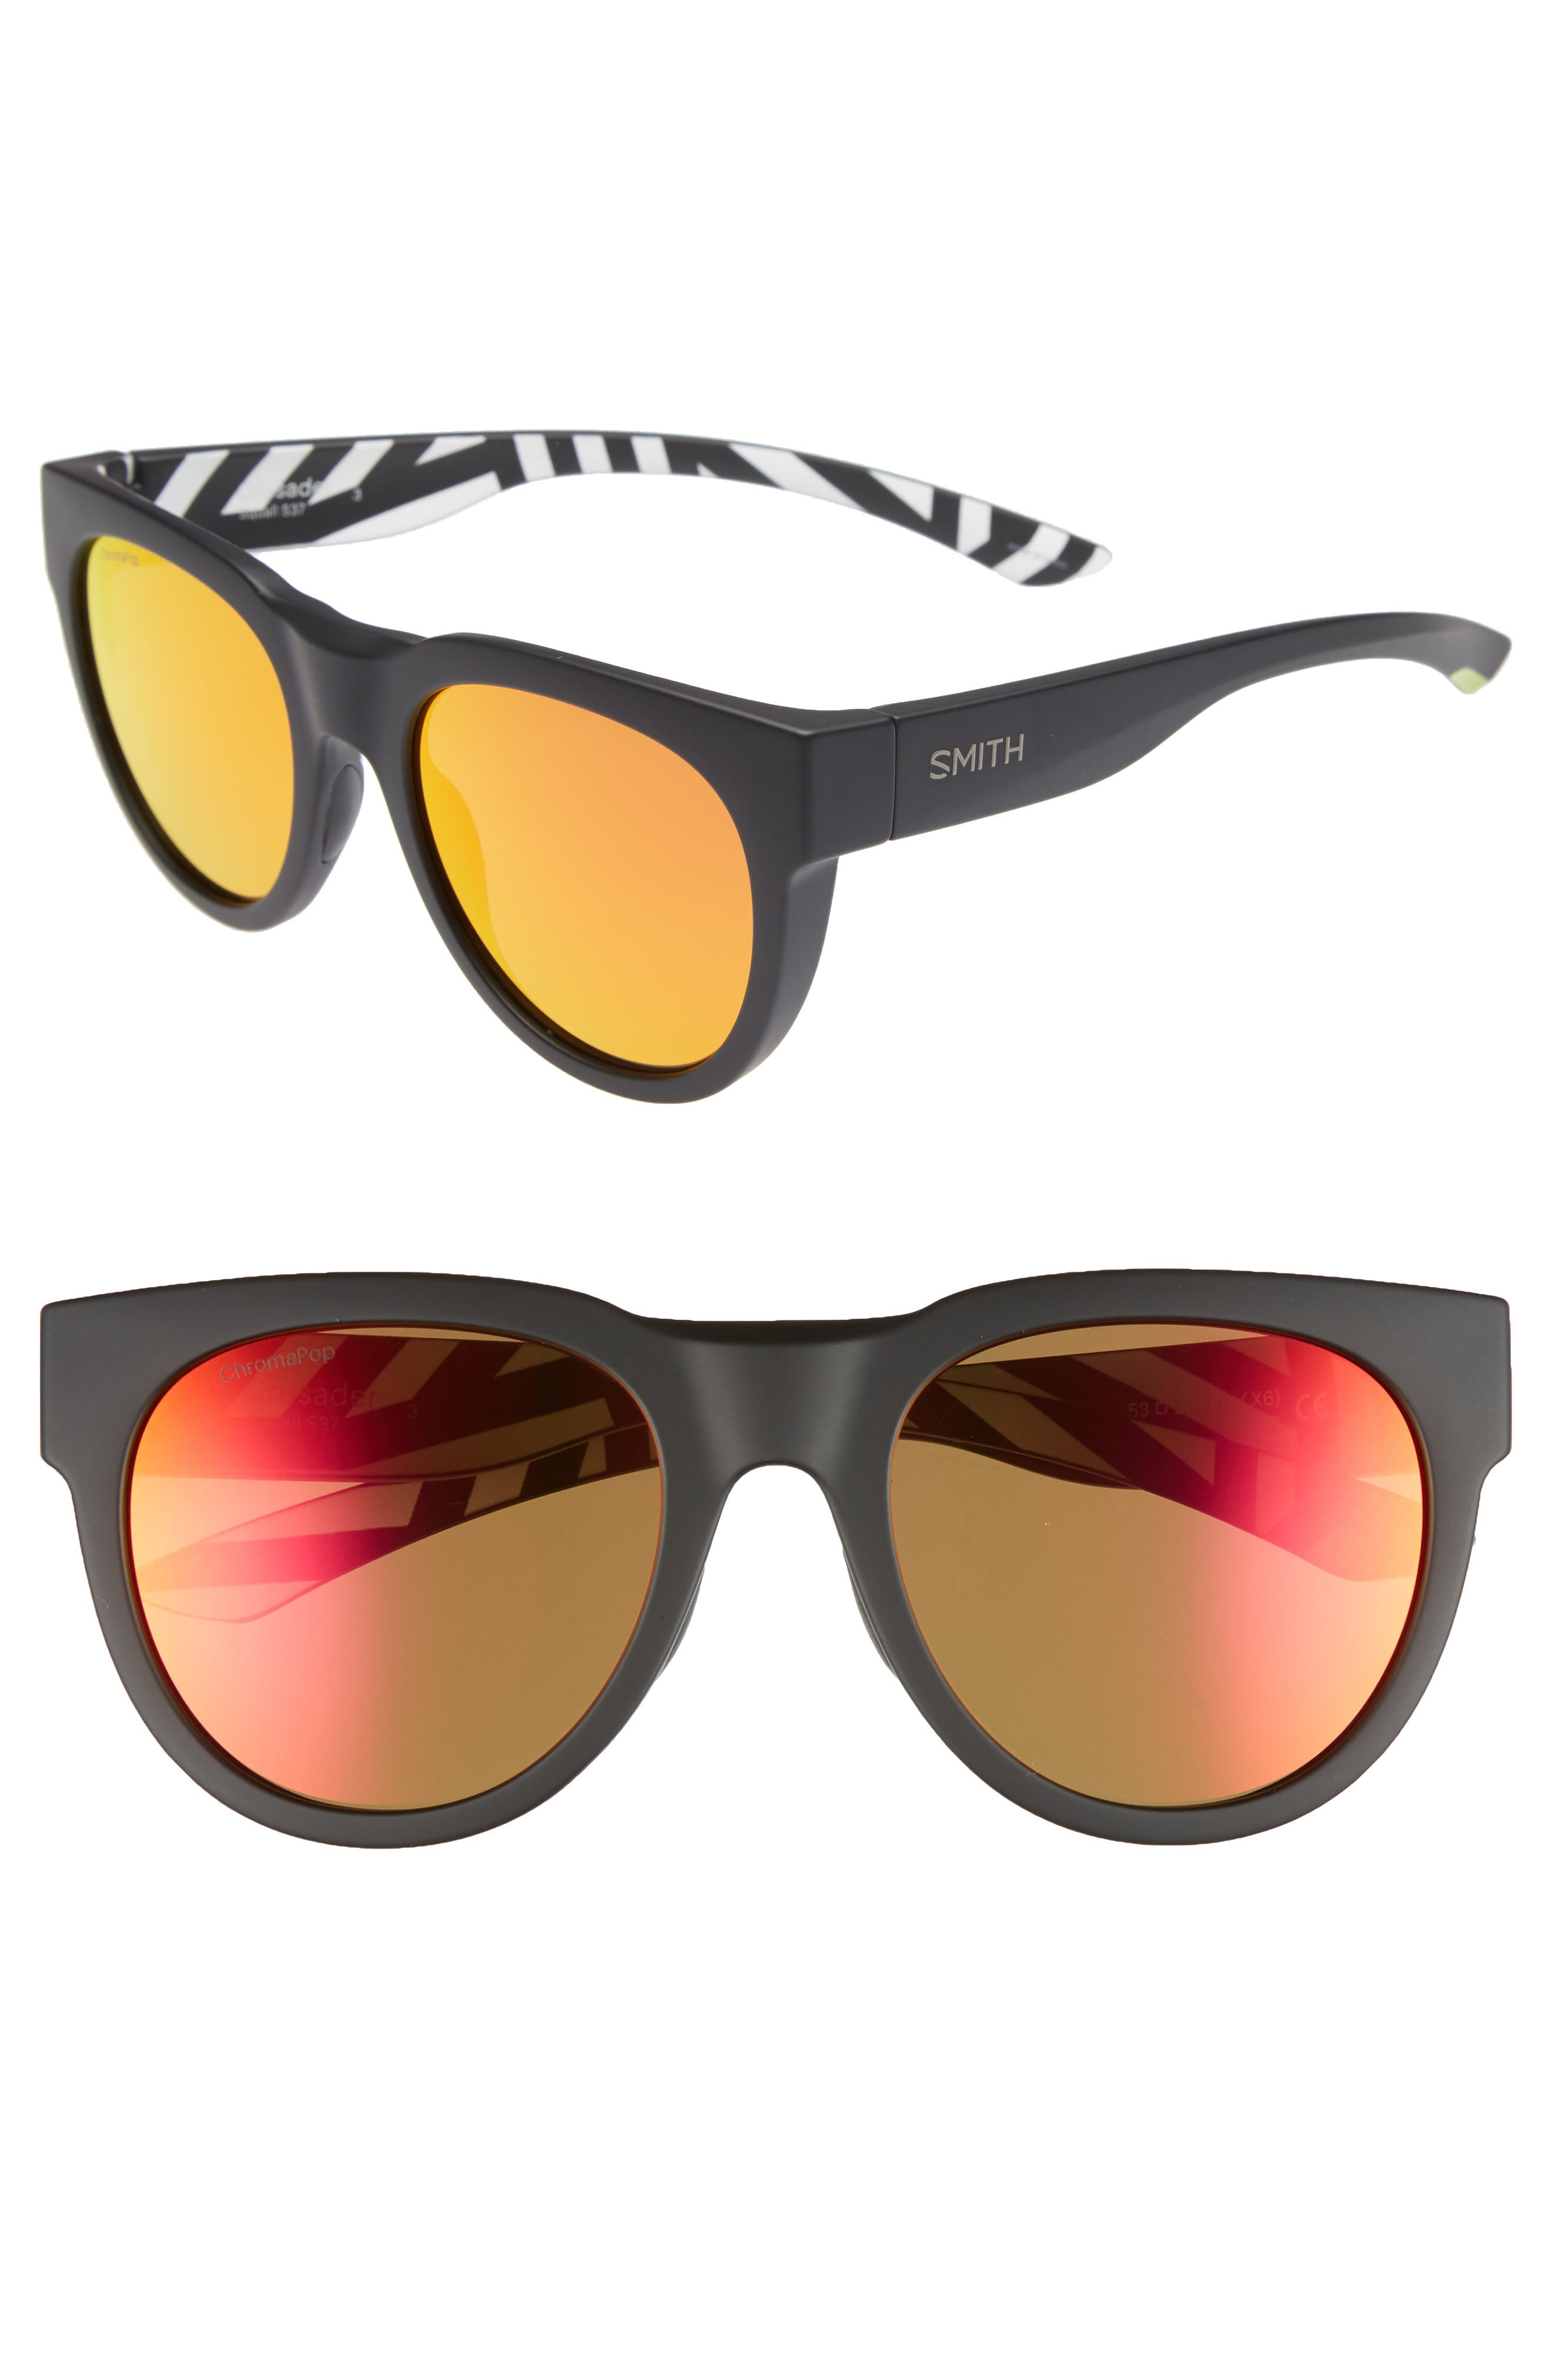 Crusader 53mm ChromaPop<sup>™</sup> Round Sunglasses,                             Main thumbnail 1, color,                             SQUALL/ SUN RED MIRROR